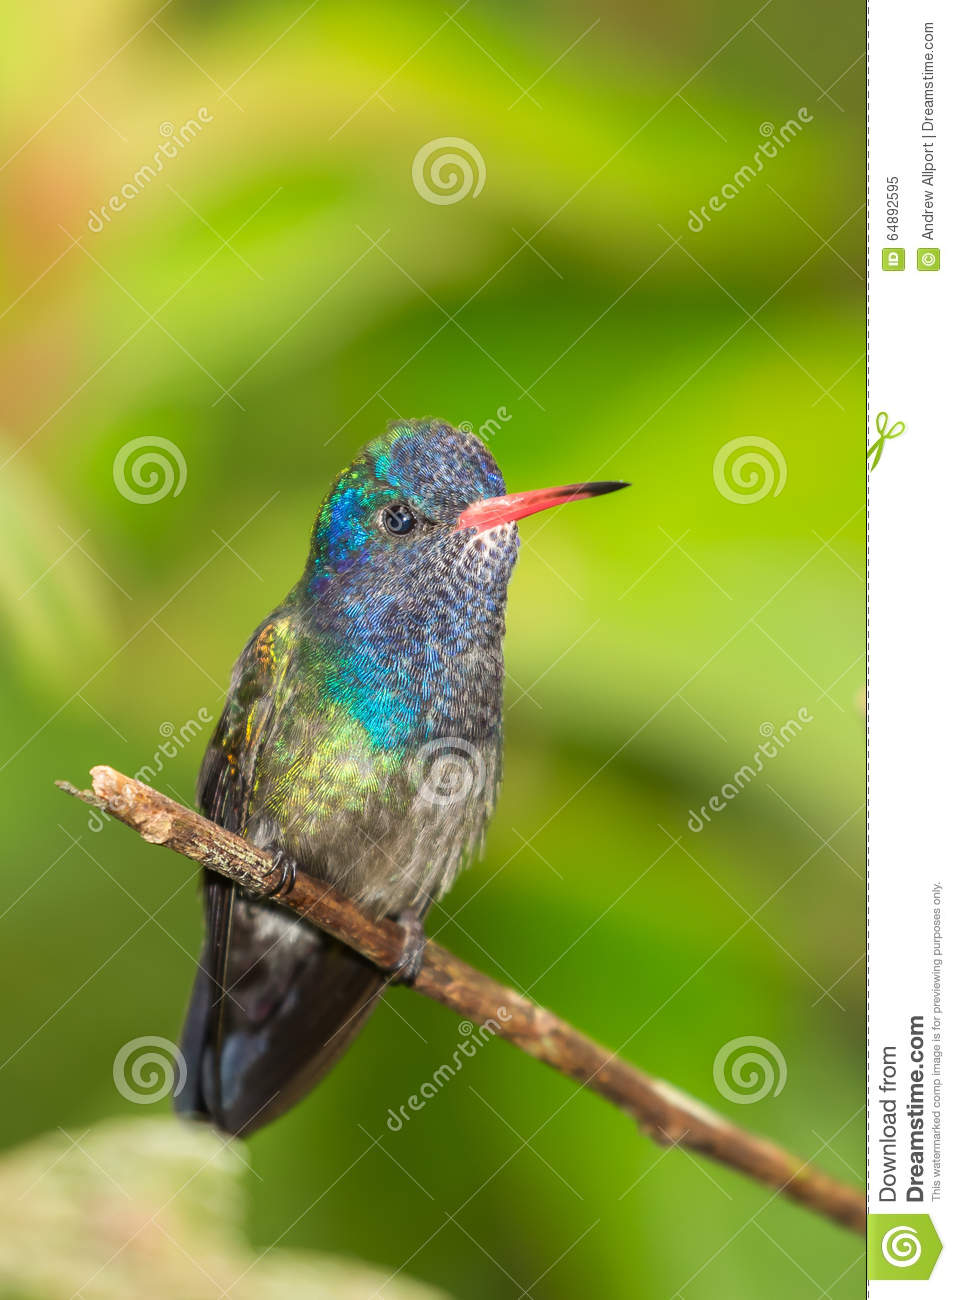 White chinned Sapphire hummingbird perched on twig